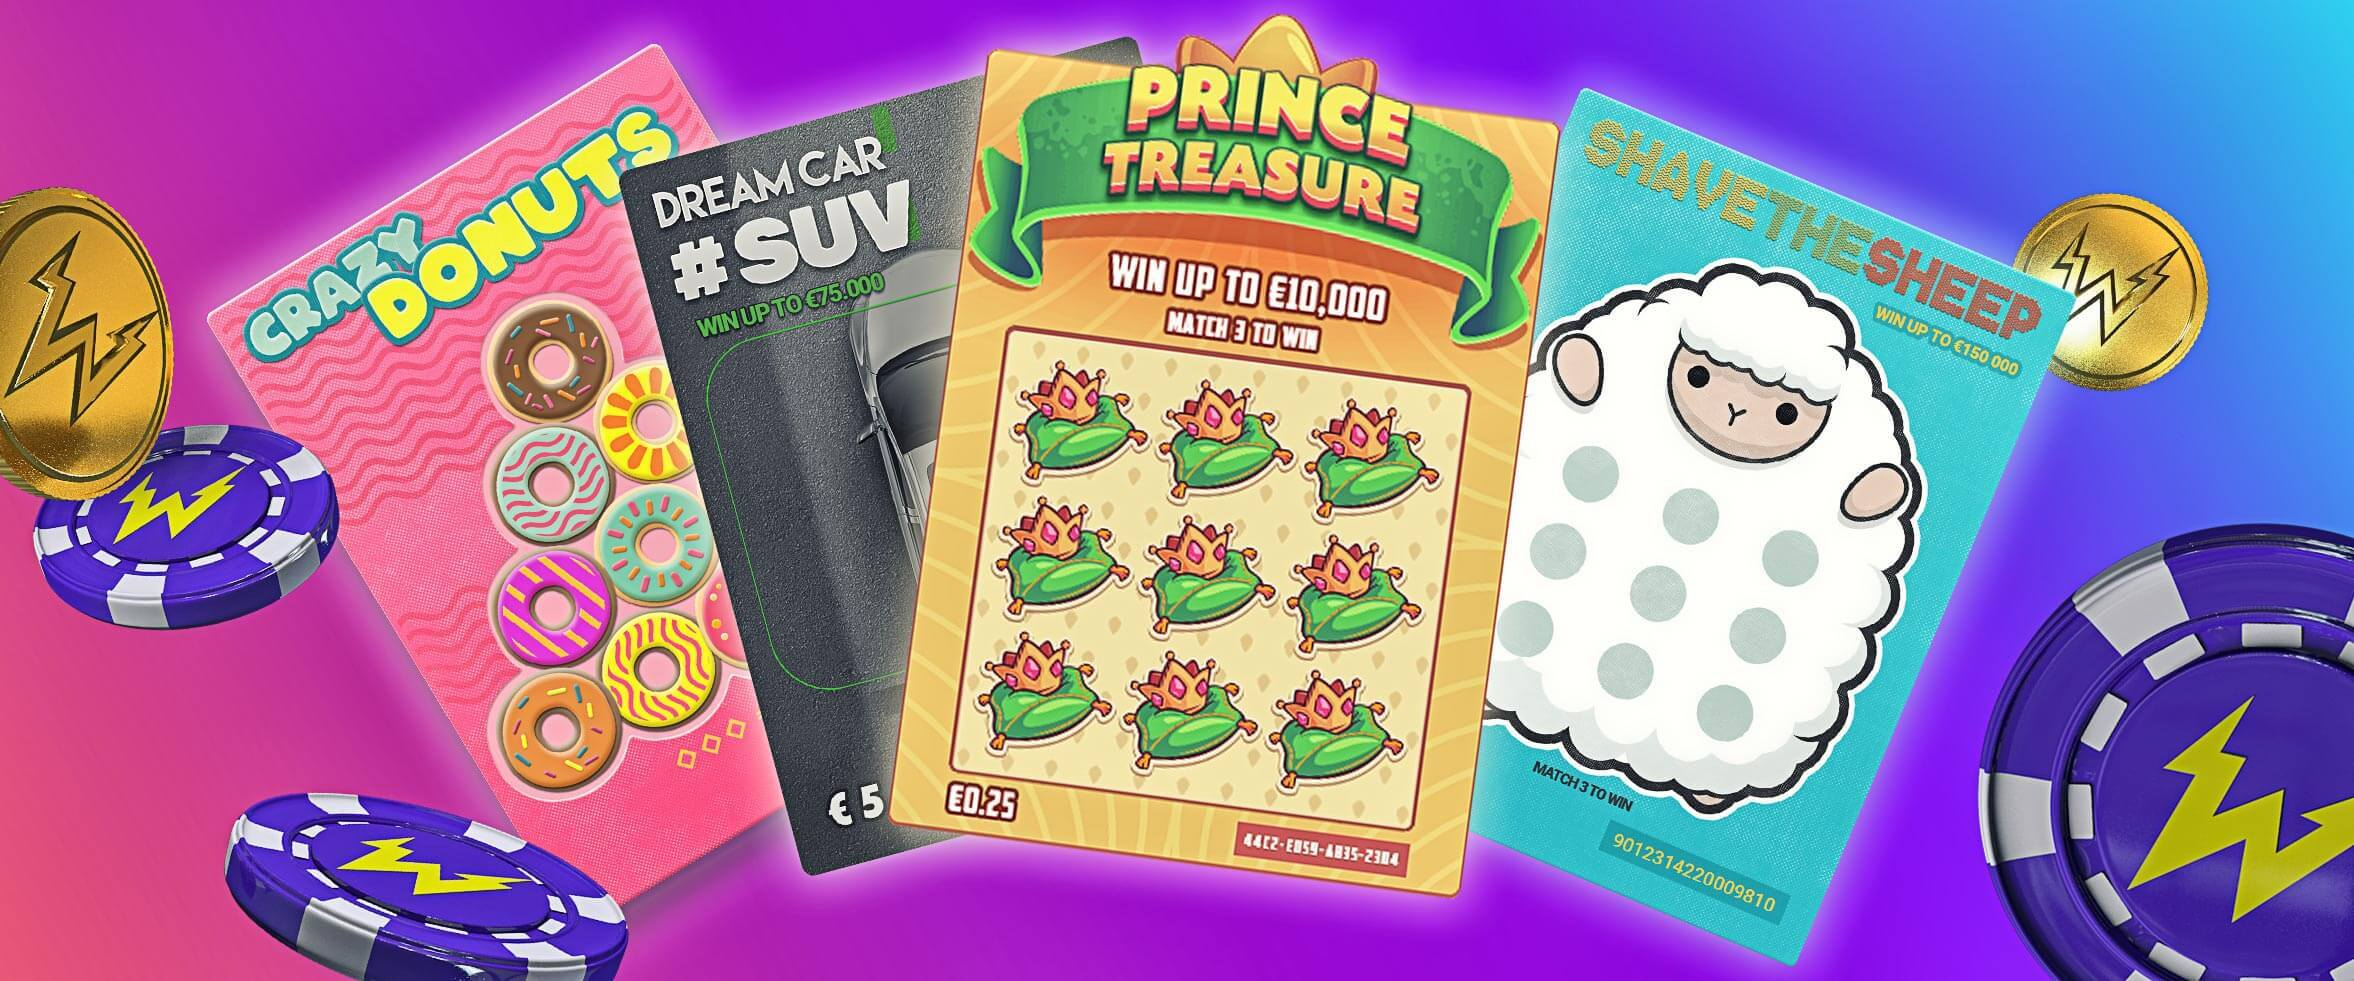 Have You Tried Our Scratchcard Games?